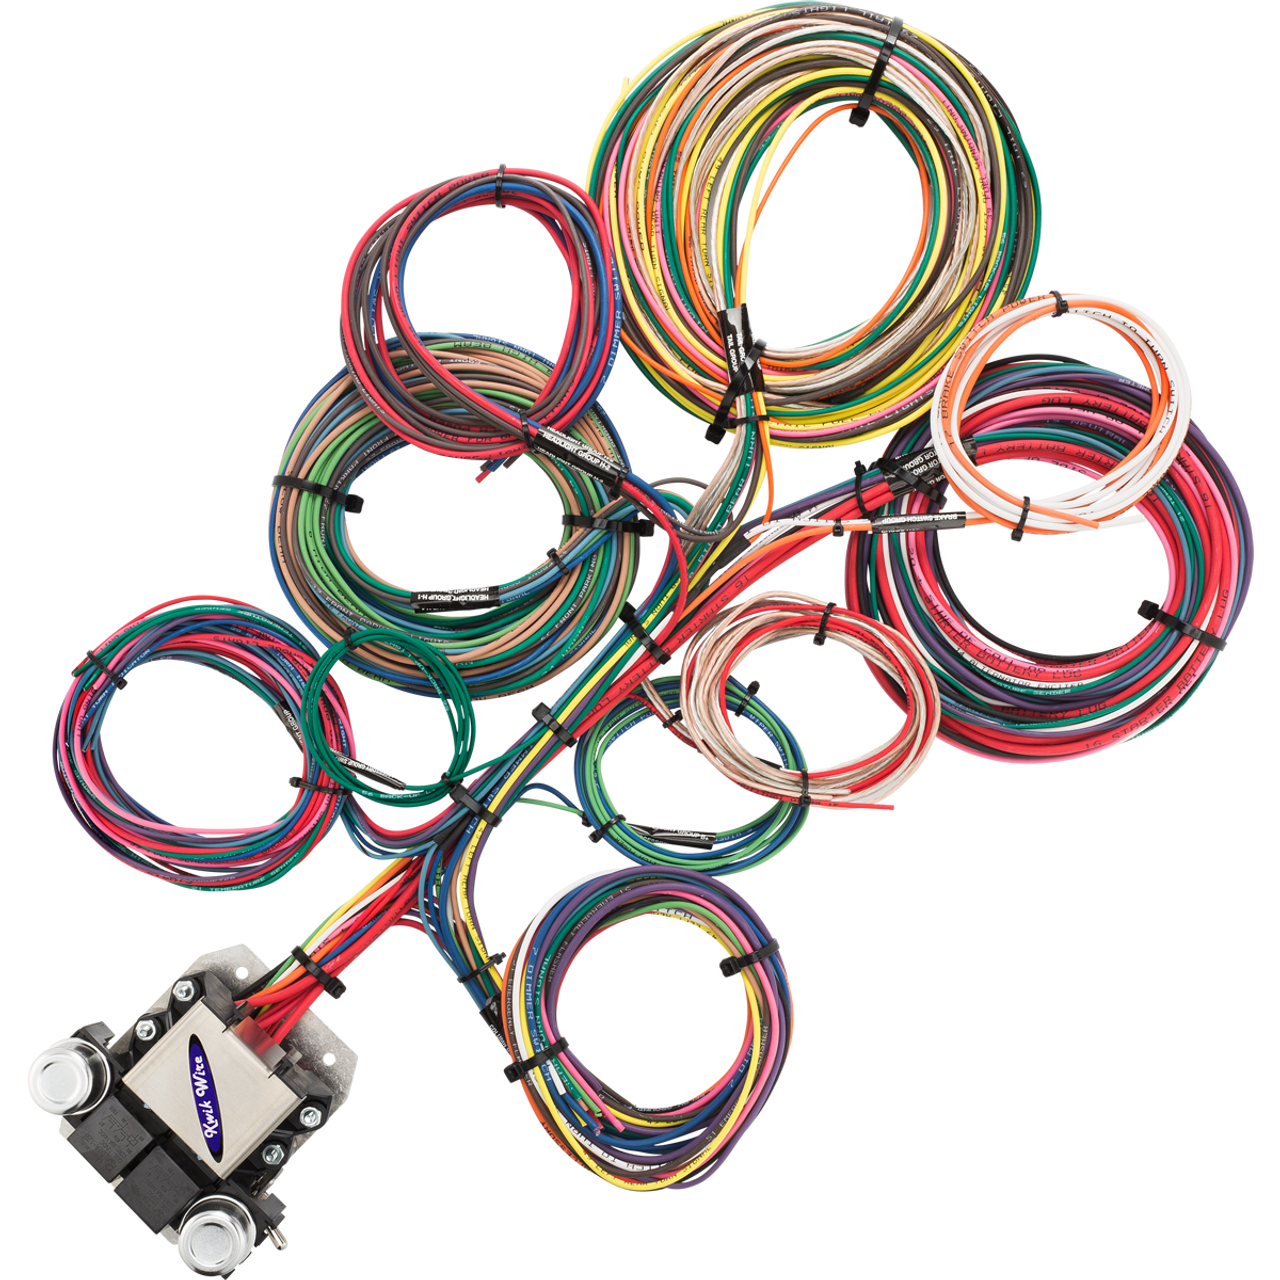 Auto Electrical Wire Covering Trusted Wiring Diagram Loom Cover Metal Motorsports Harness Schematics Data U2022 Braided Split